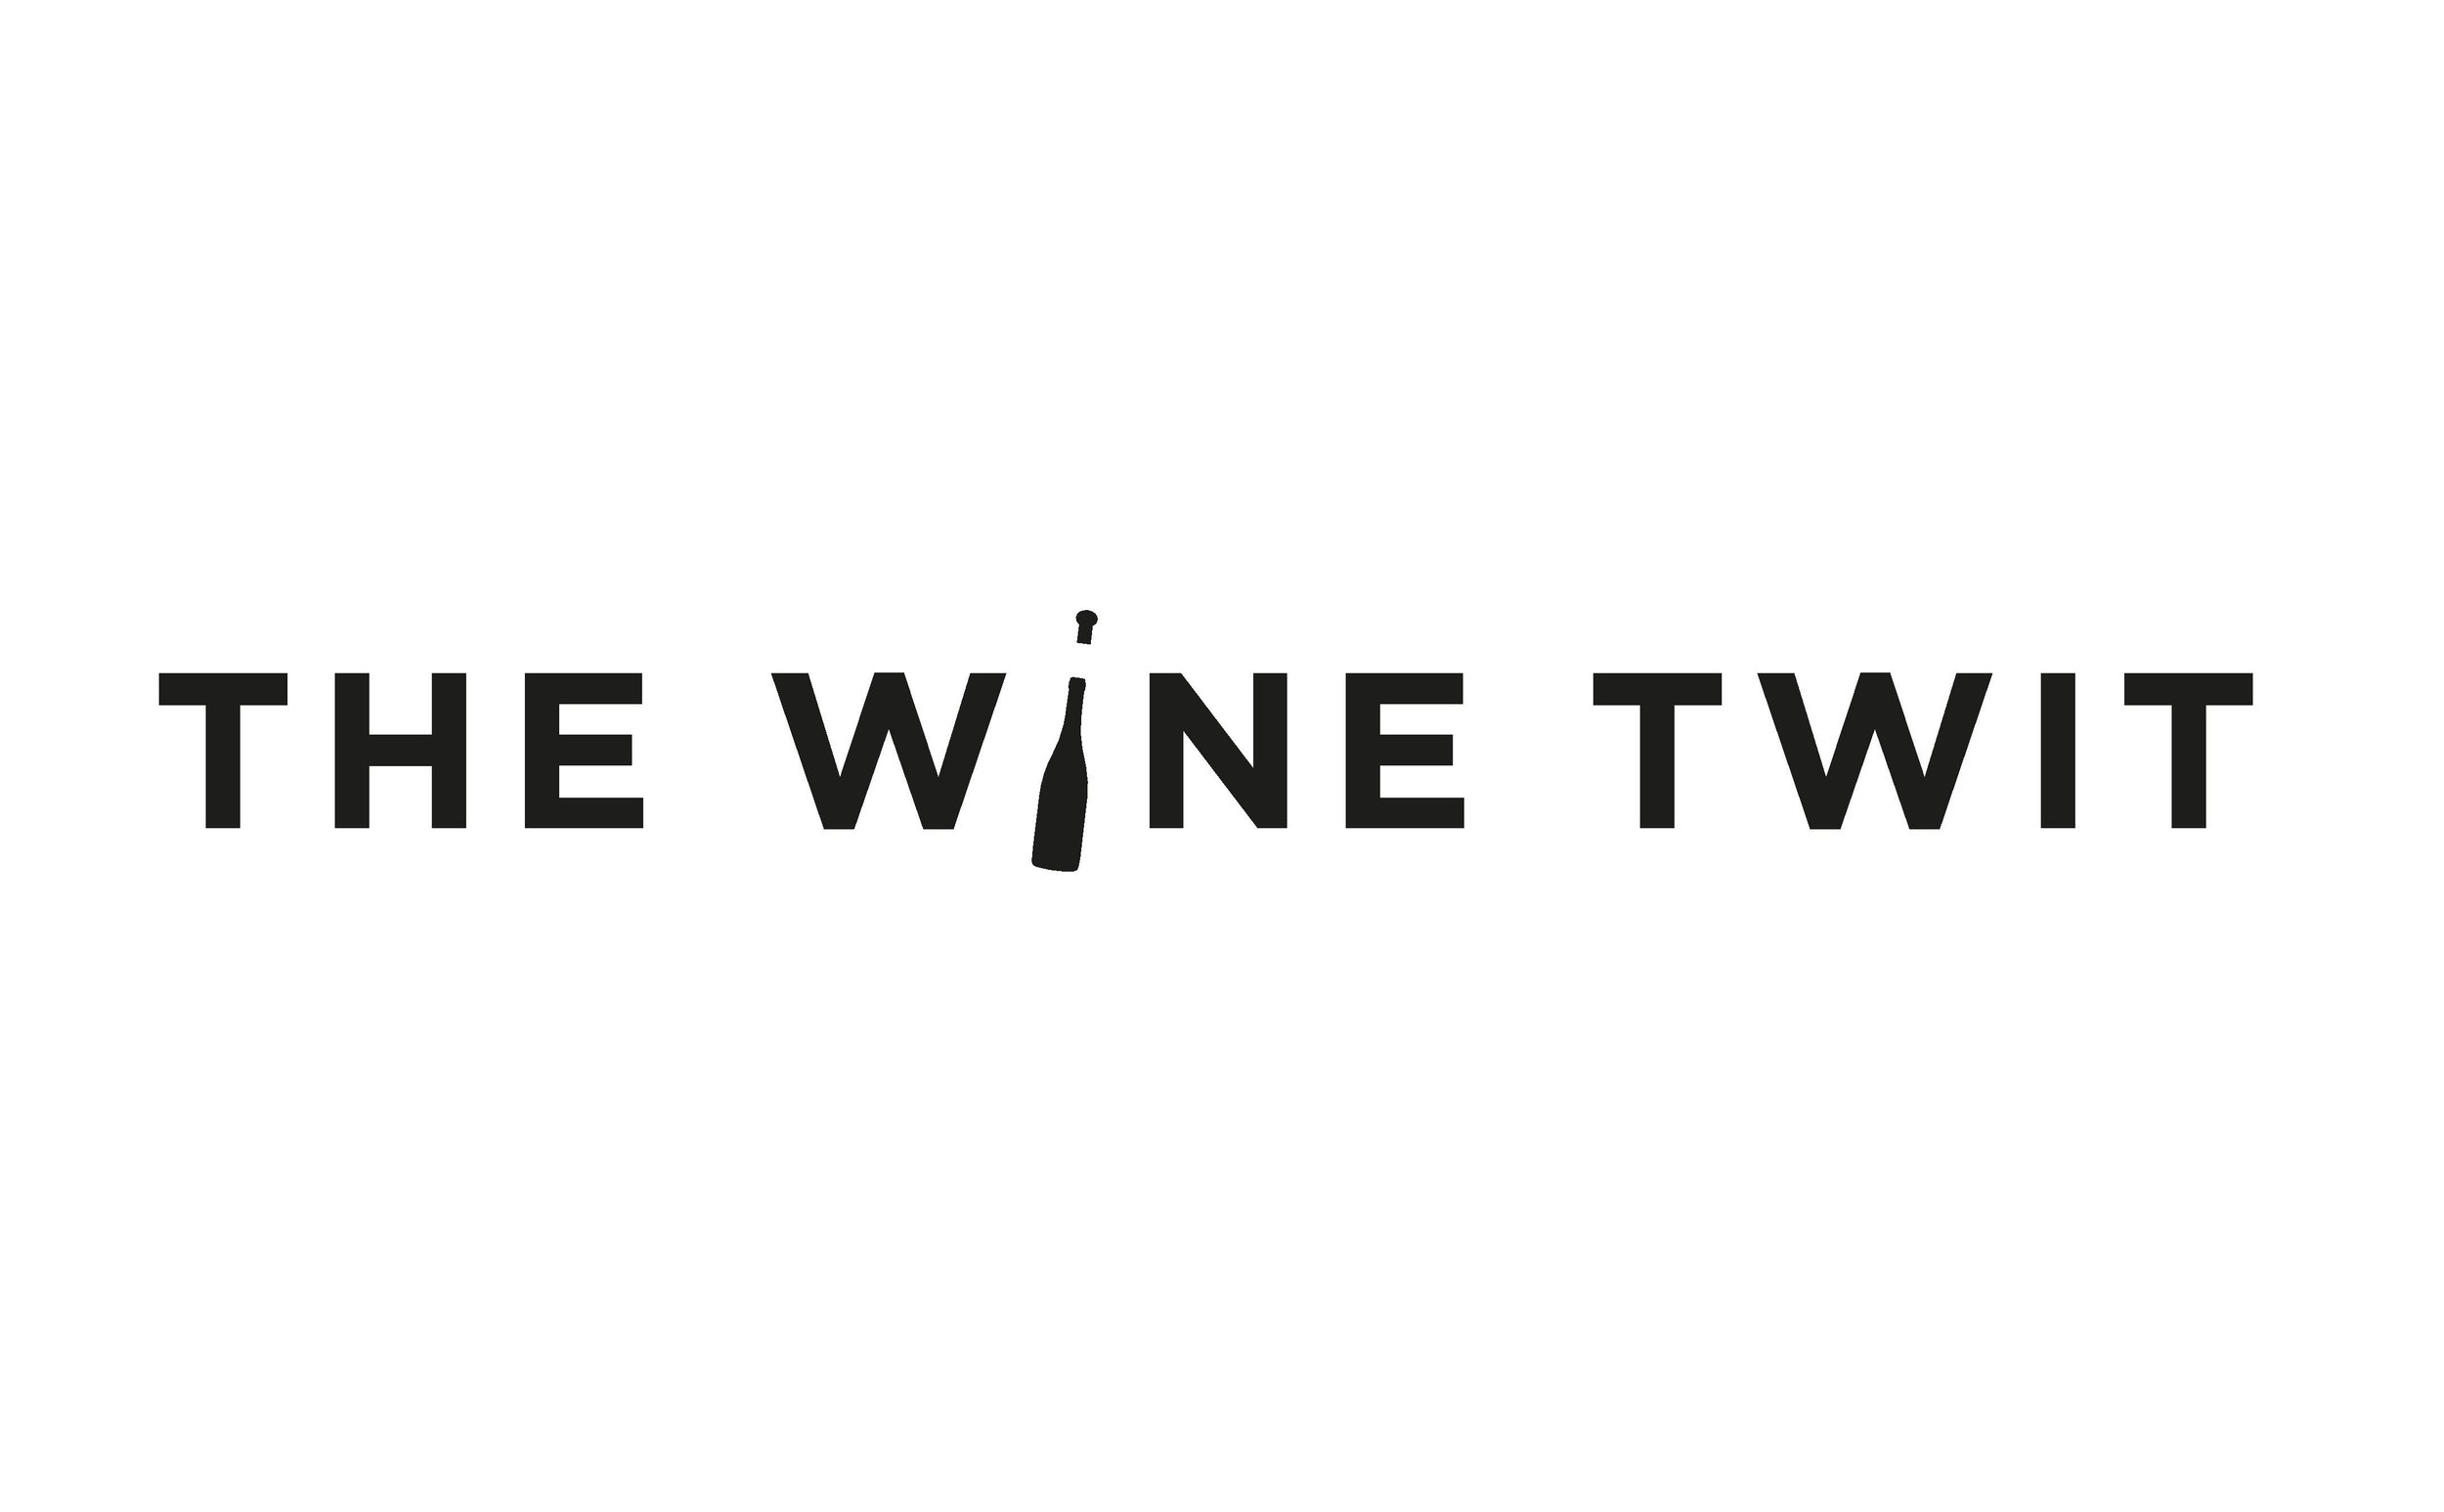 THE WINE TWIT V1-page-002.jpg